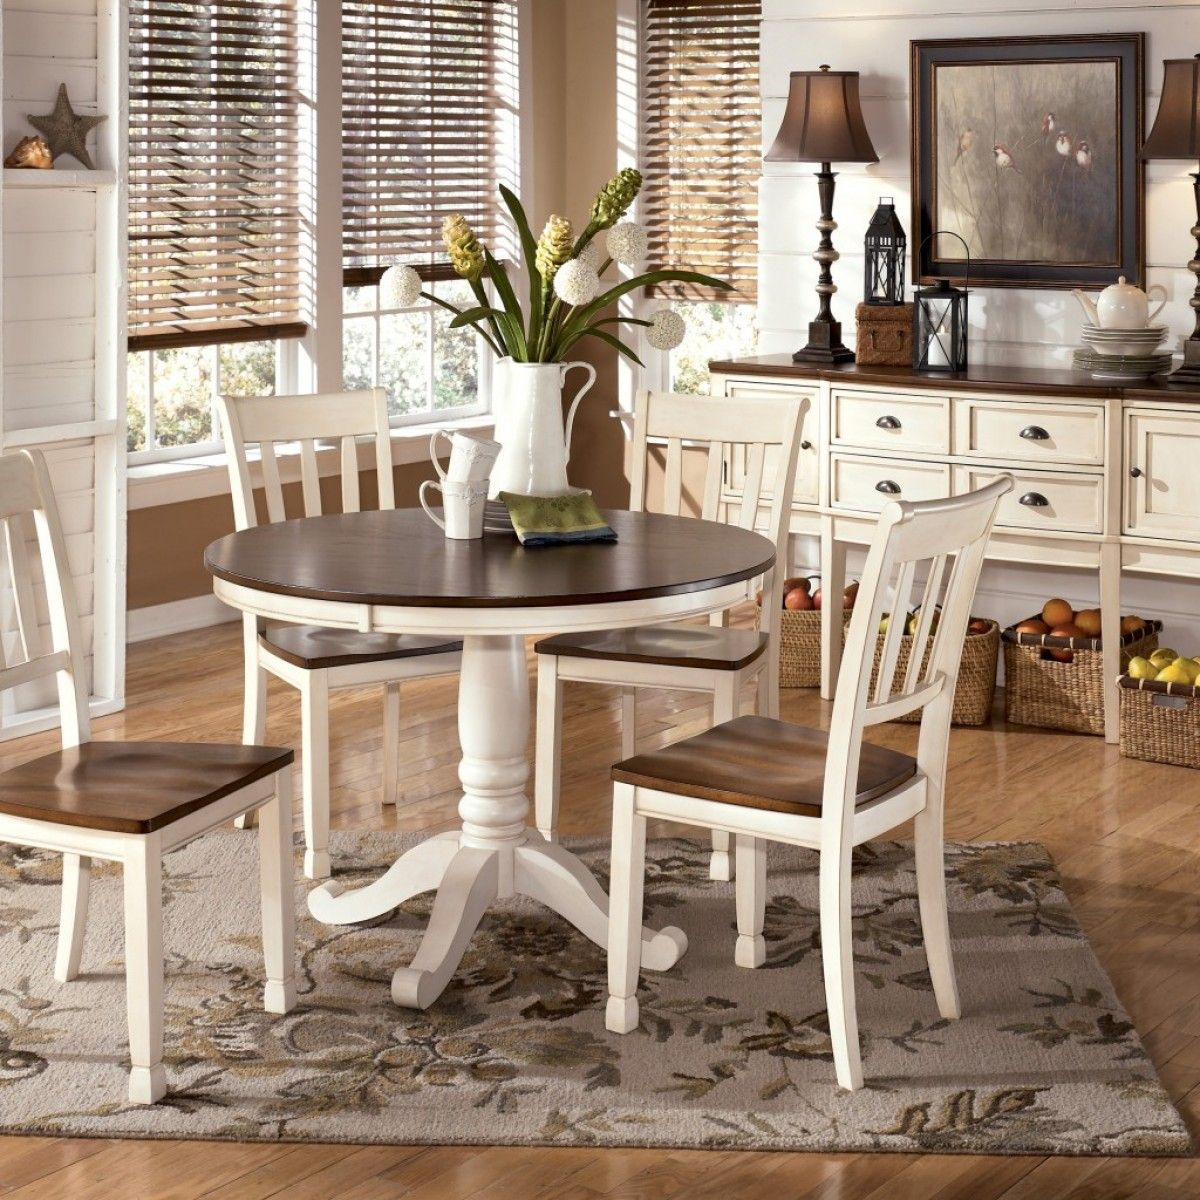 Round Pedestal Dining Table  Decoration  Pinterest  Round Fair Wholesale Dining Room Chairs Decorating Inspiration